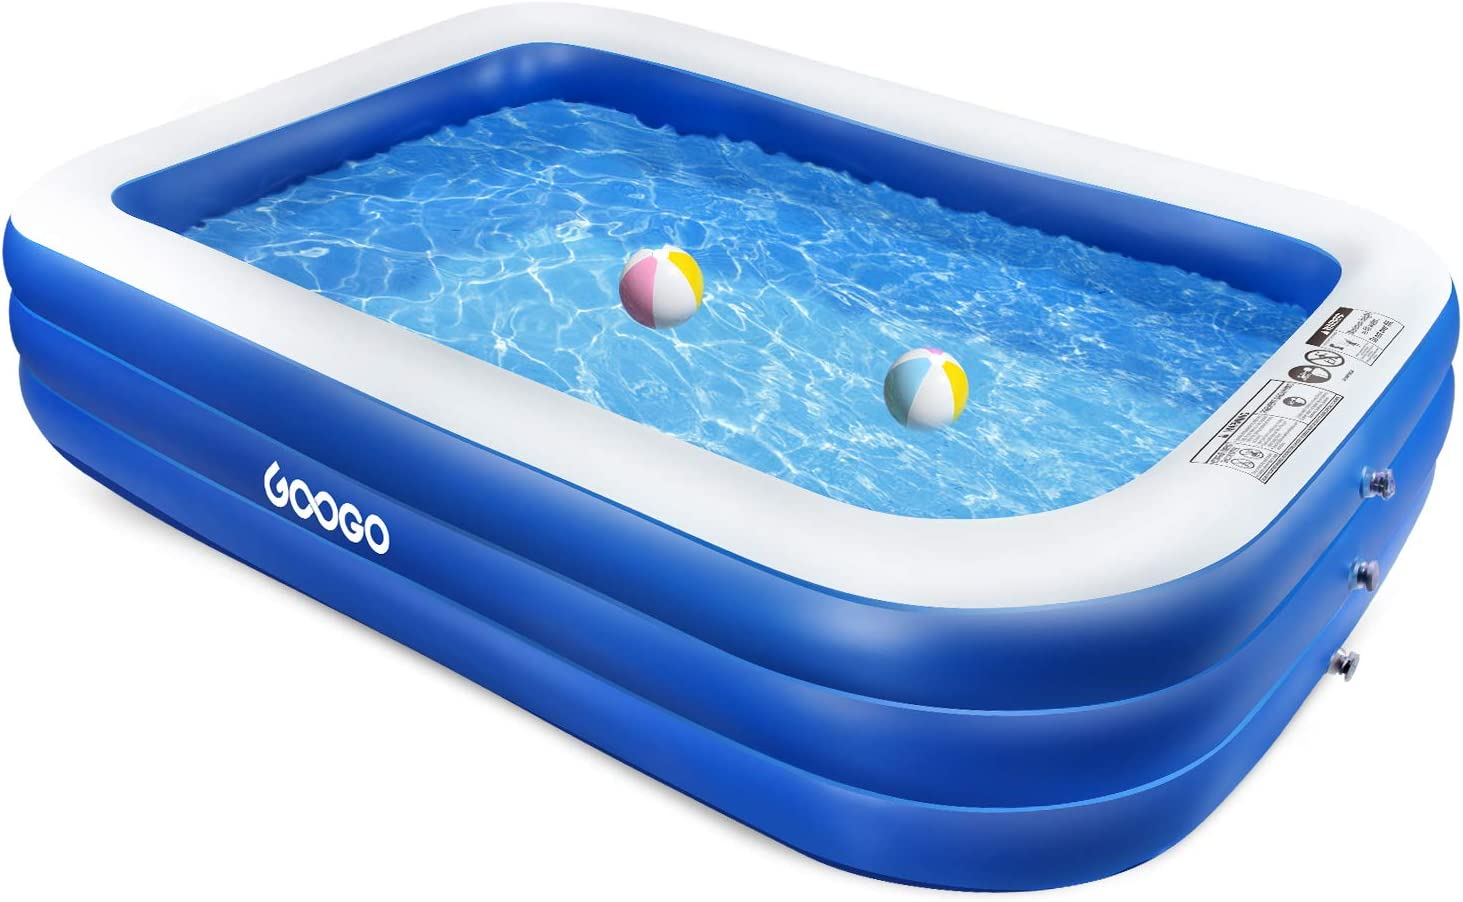 GOOGO Family Inflatable Swimming Pool